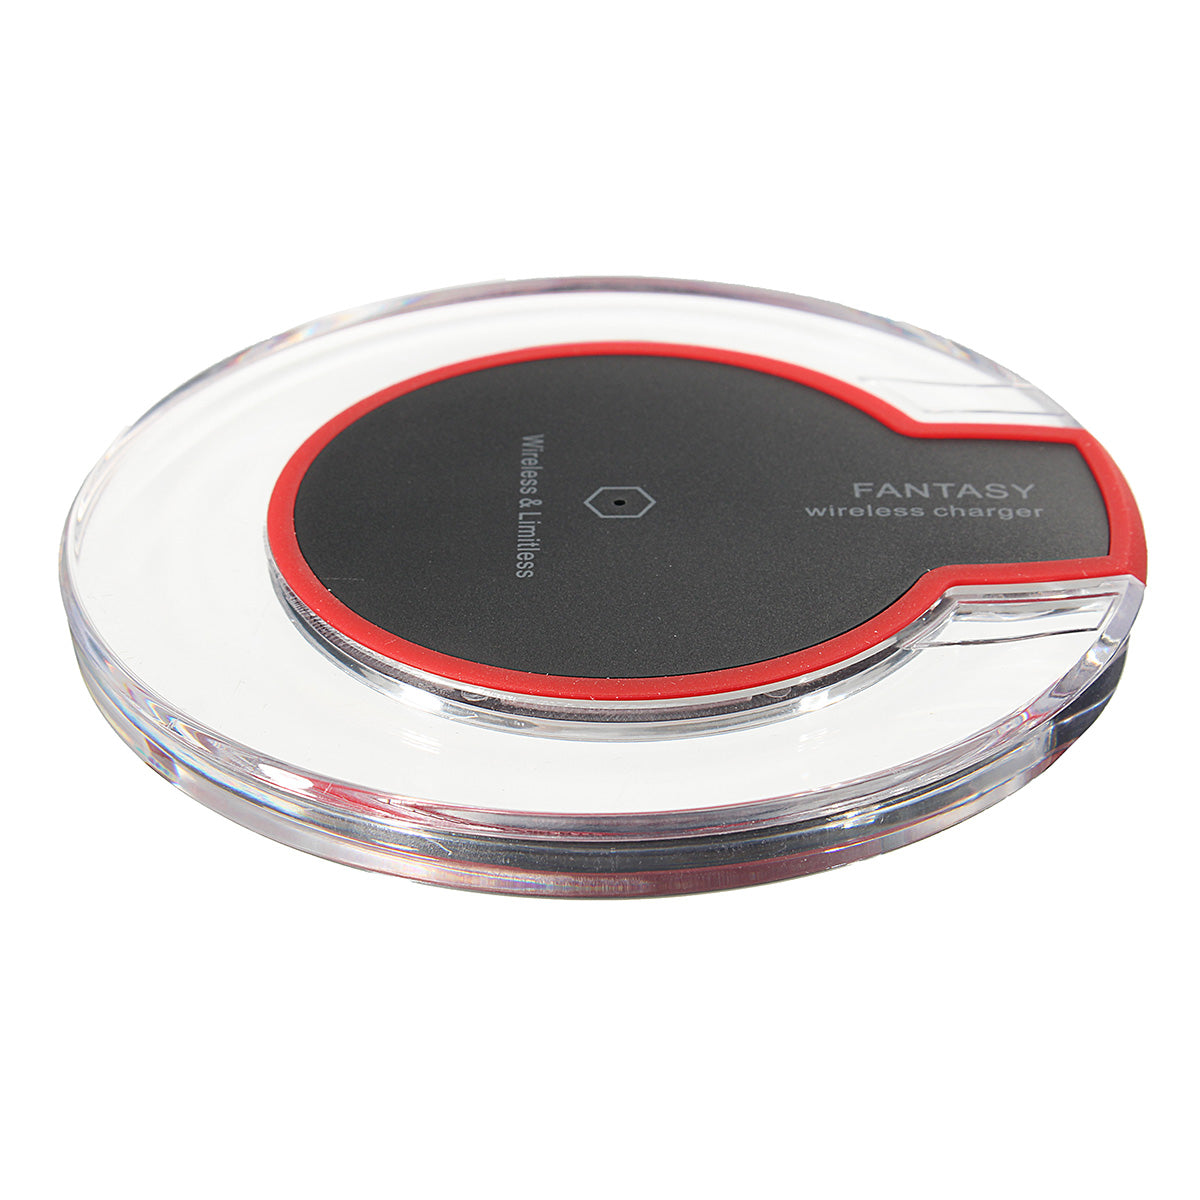 Qi Wireless Fast Charging Desktop Mobile Phone Charger Pad for Samsung S8+ S7 S7 Edge